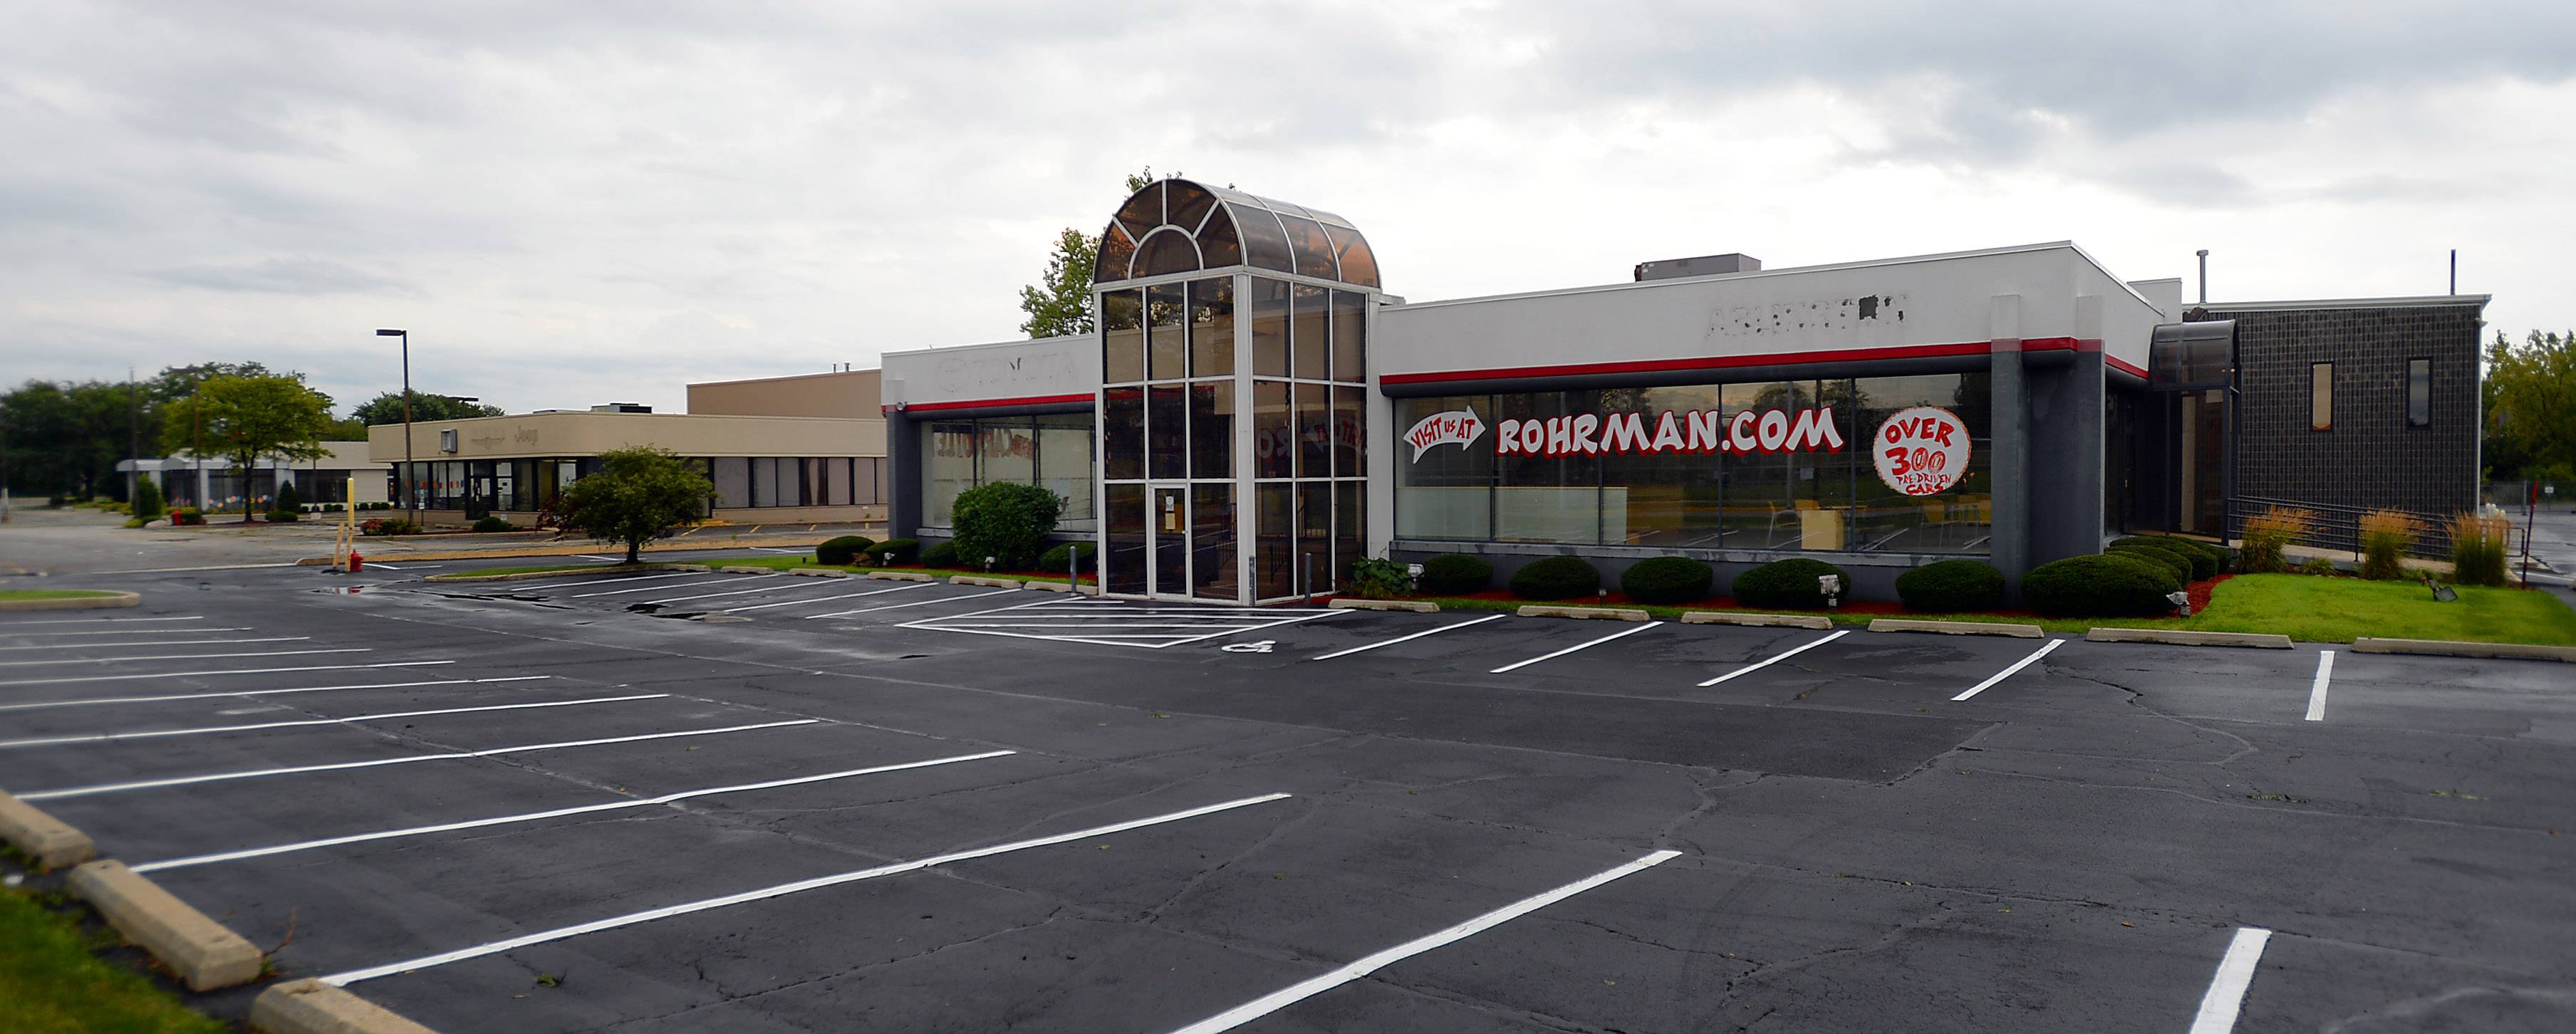 Bob Rohrman is eyeing the former Arlington Toyota property for a used car dealership.